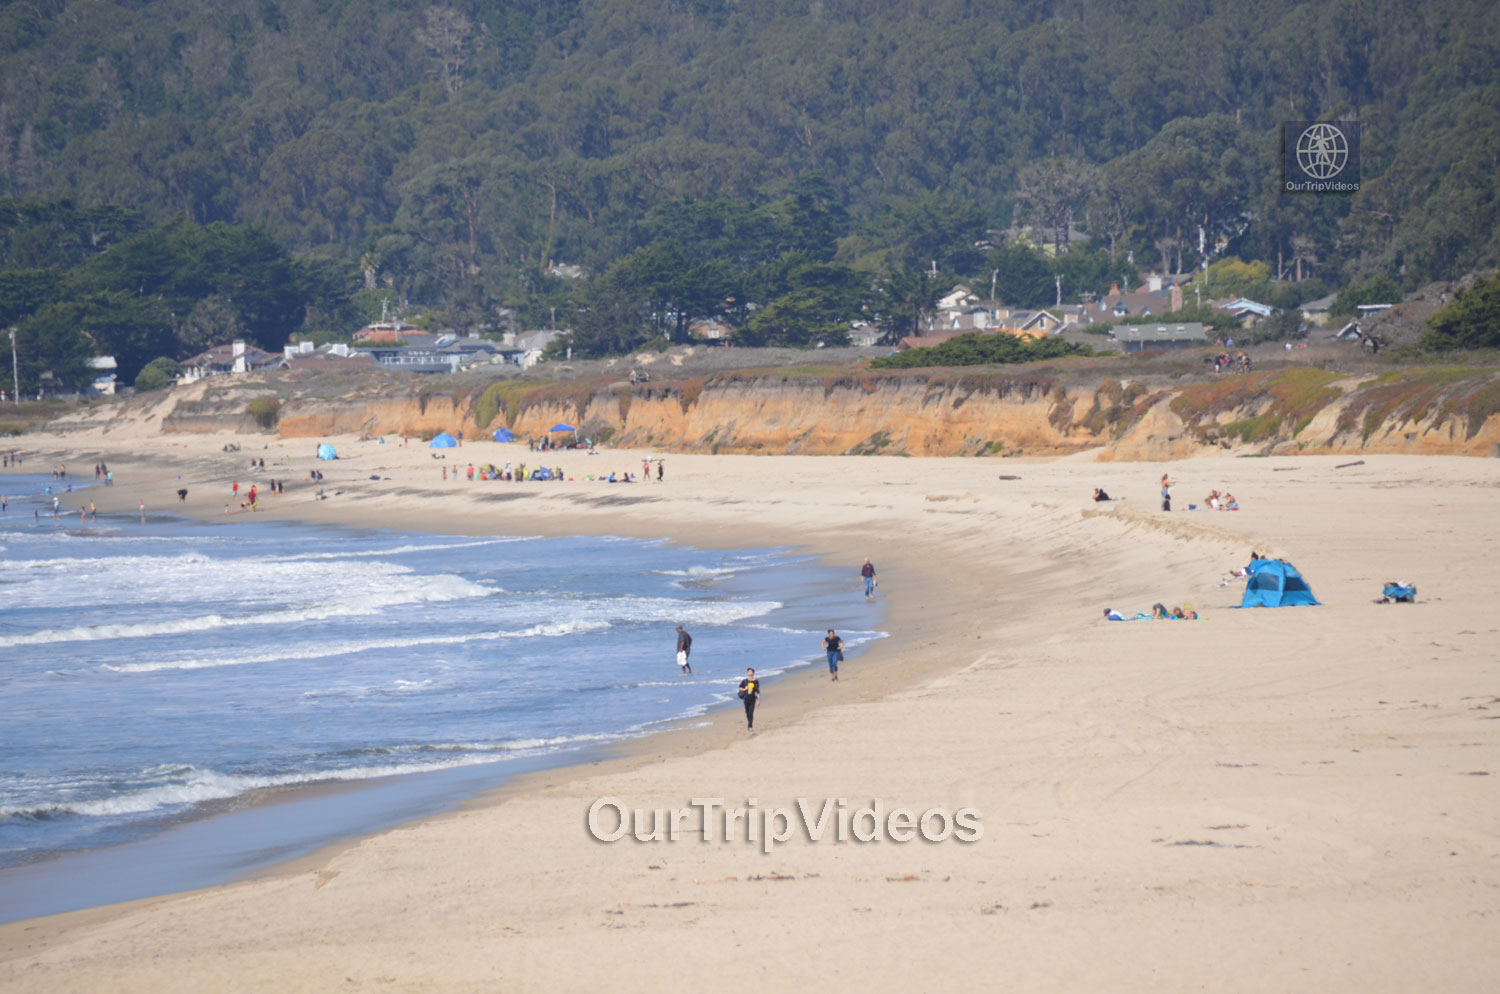 State Beach(Francis Beach), Half Moon Bay, CA, USA - Picture 18 of 25